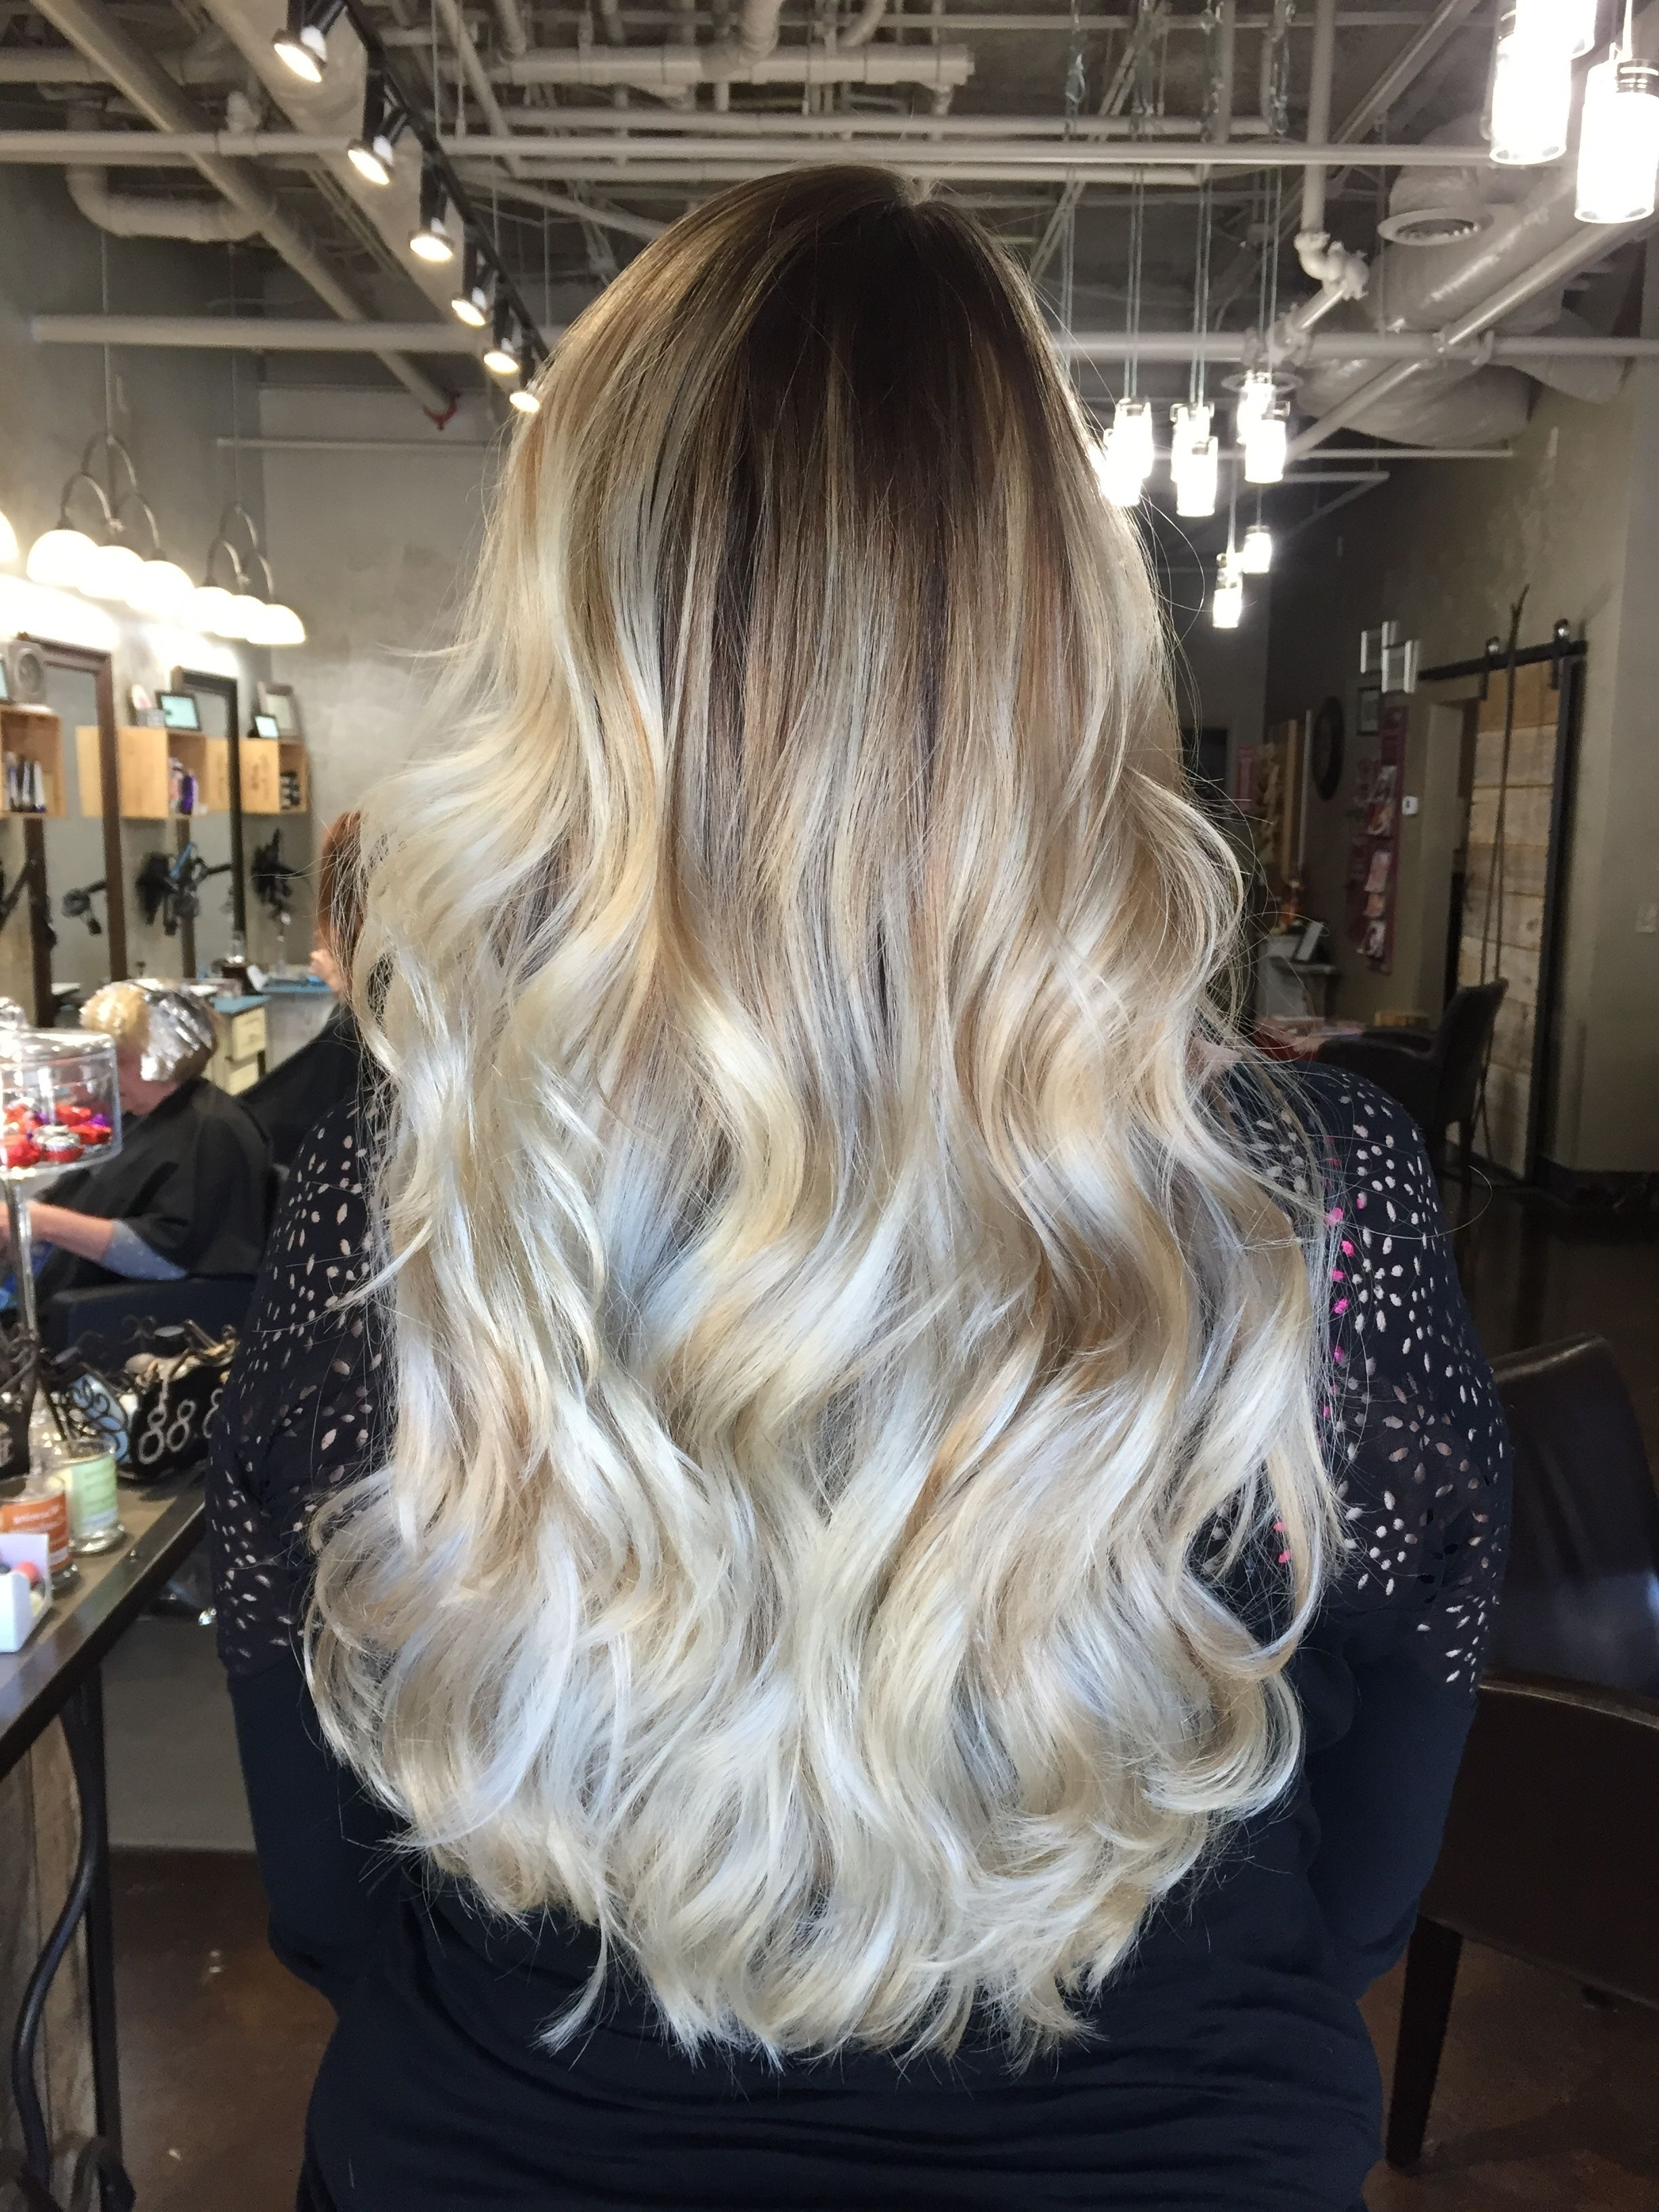 Widely Used Icy Ombre Waves Blonde Hairstyles Within Icy Blonde Ombré Balayagelindsay Banks! #hairbylindsaybanks (View 7 of 20)